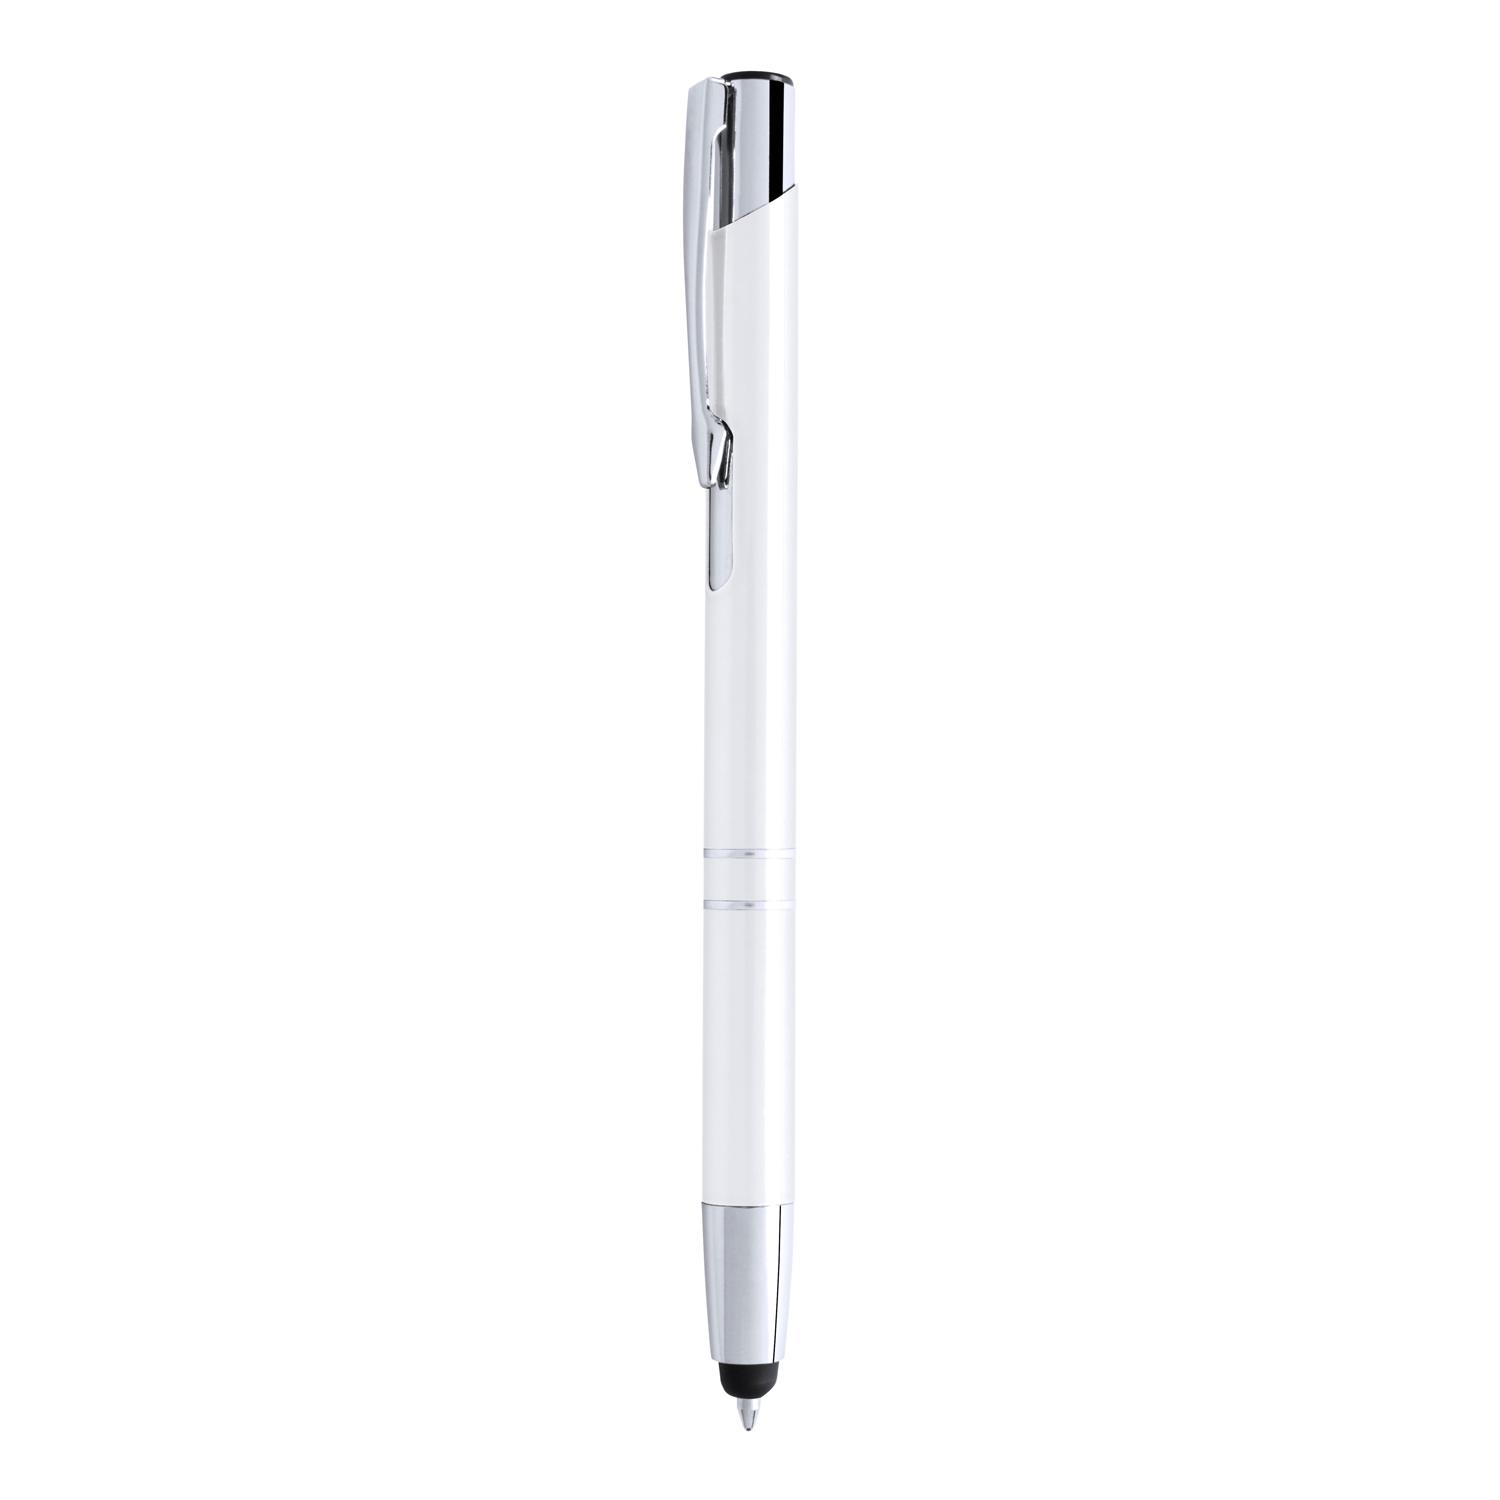 Ball Pen 058 (Aluminium ball pen) - hmi22058-02 (White)